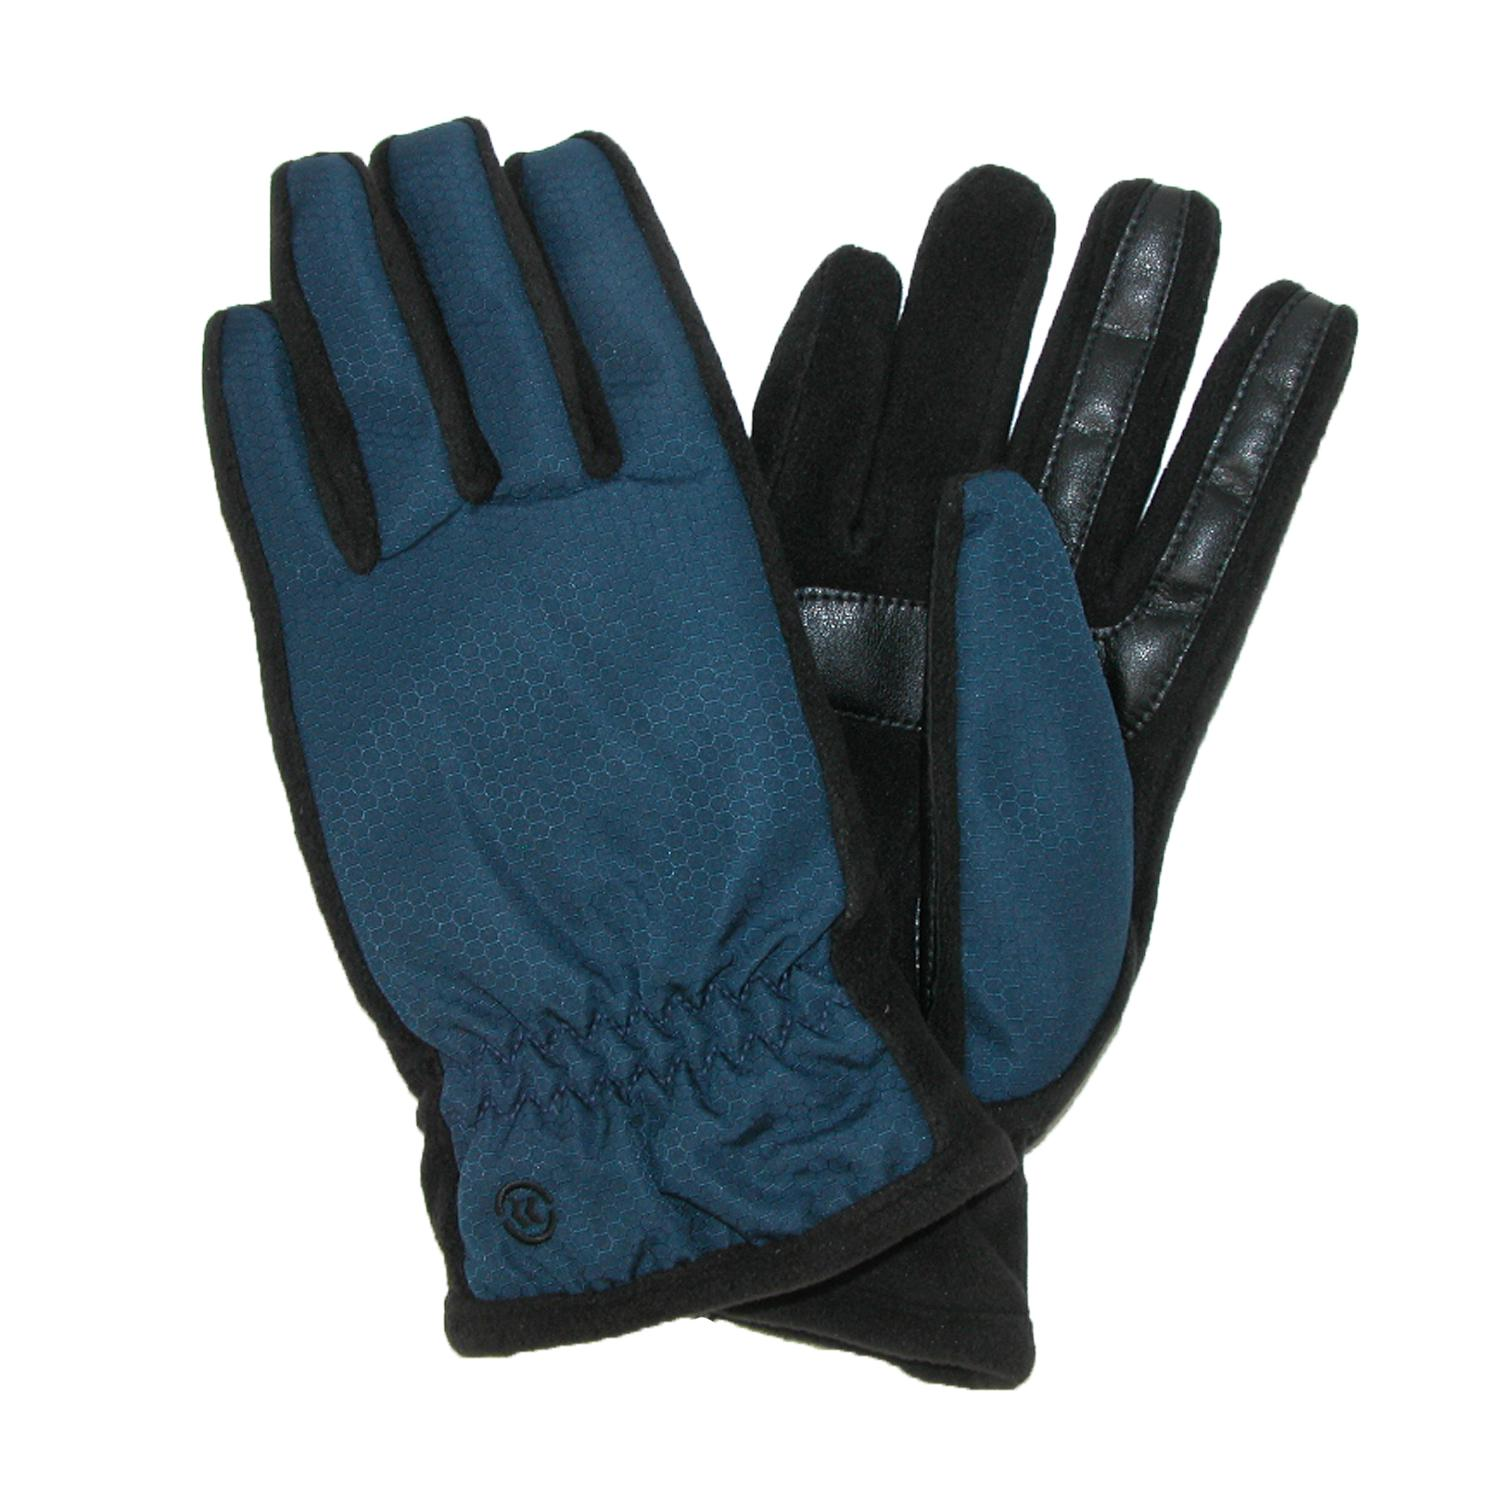 Isotoner  Women's Nylon SmarTouch Winter Texting Gloves